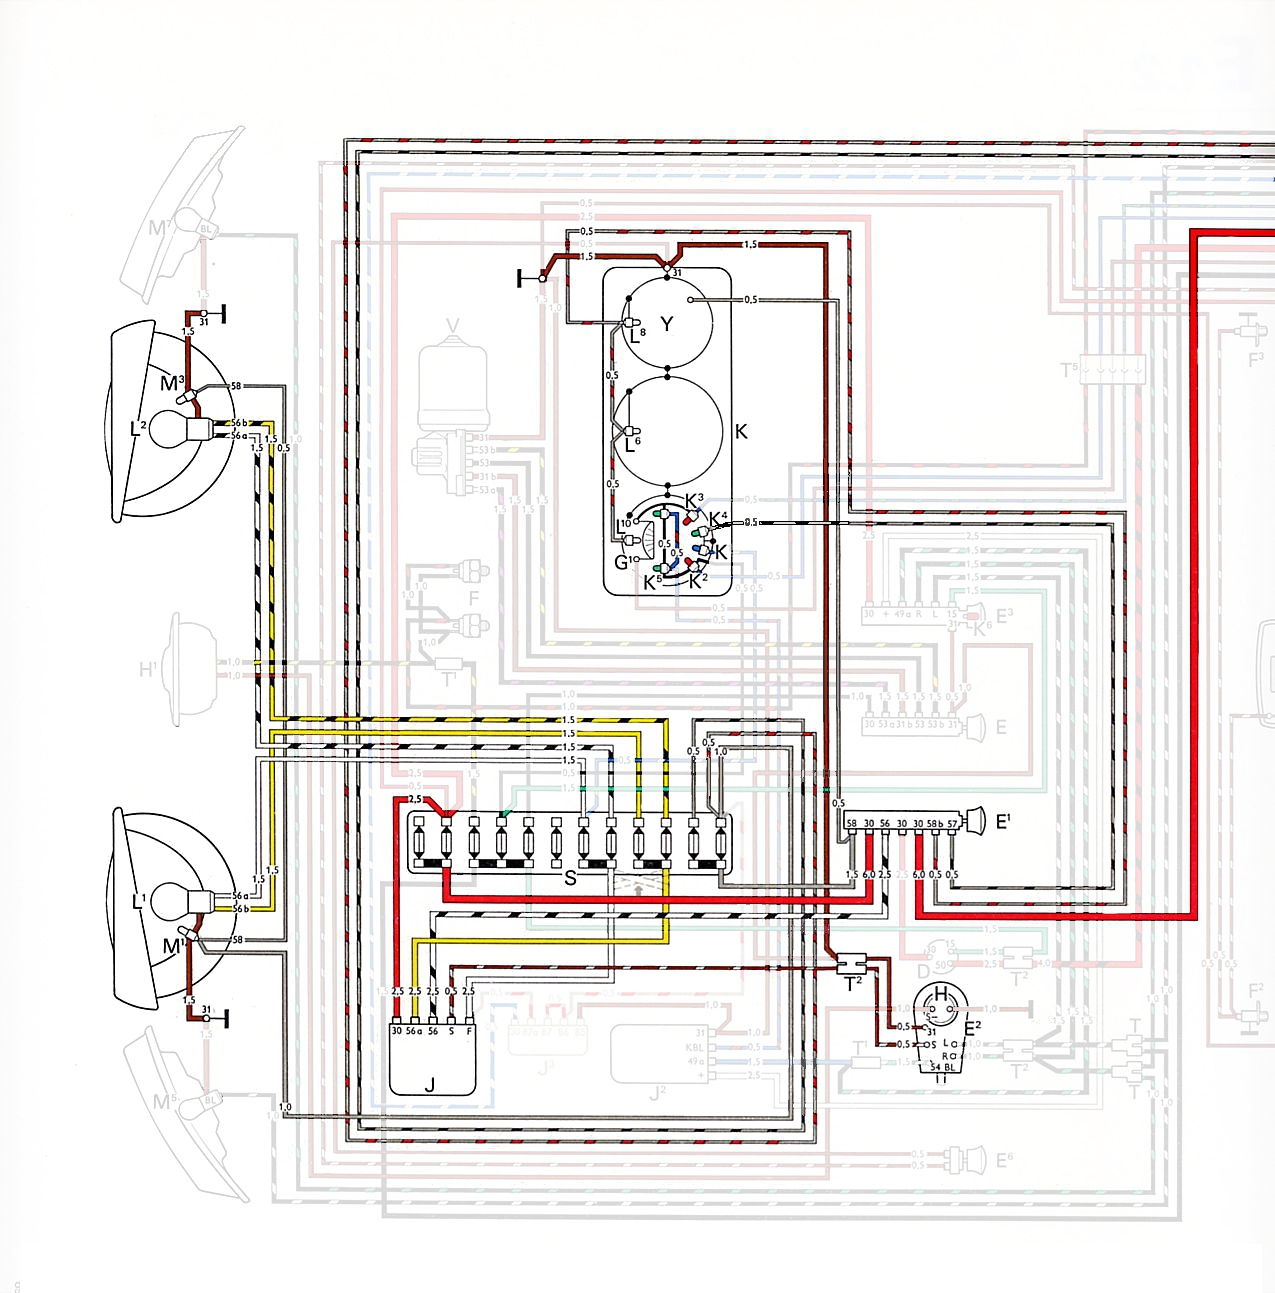 Type 2 Wiring Diagrams Diagram Read And Draw